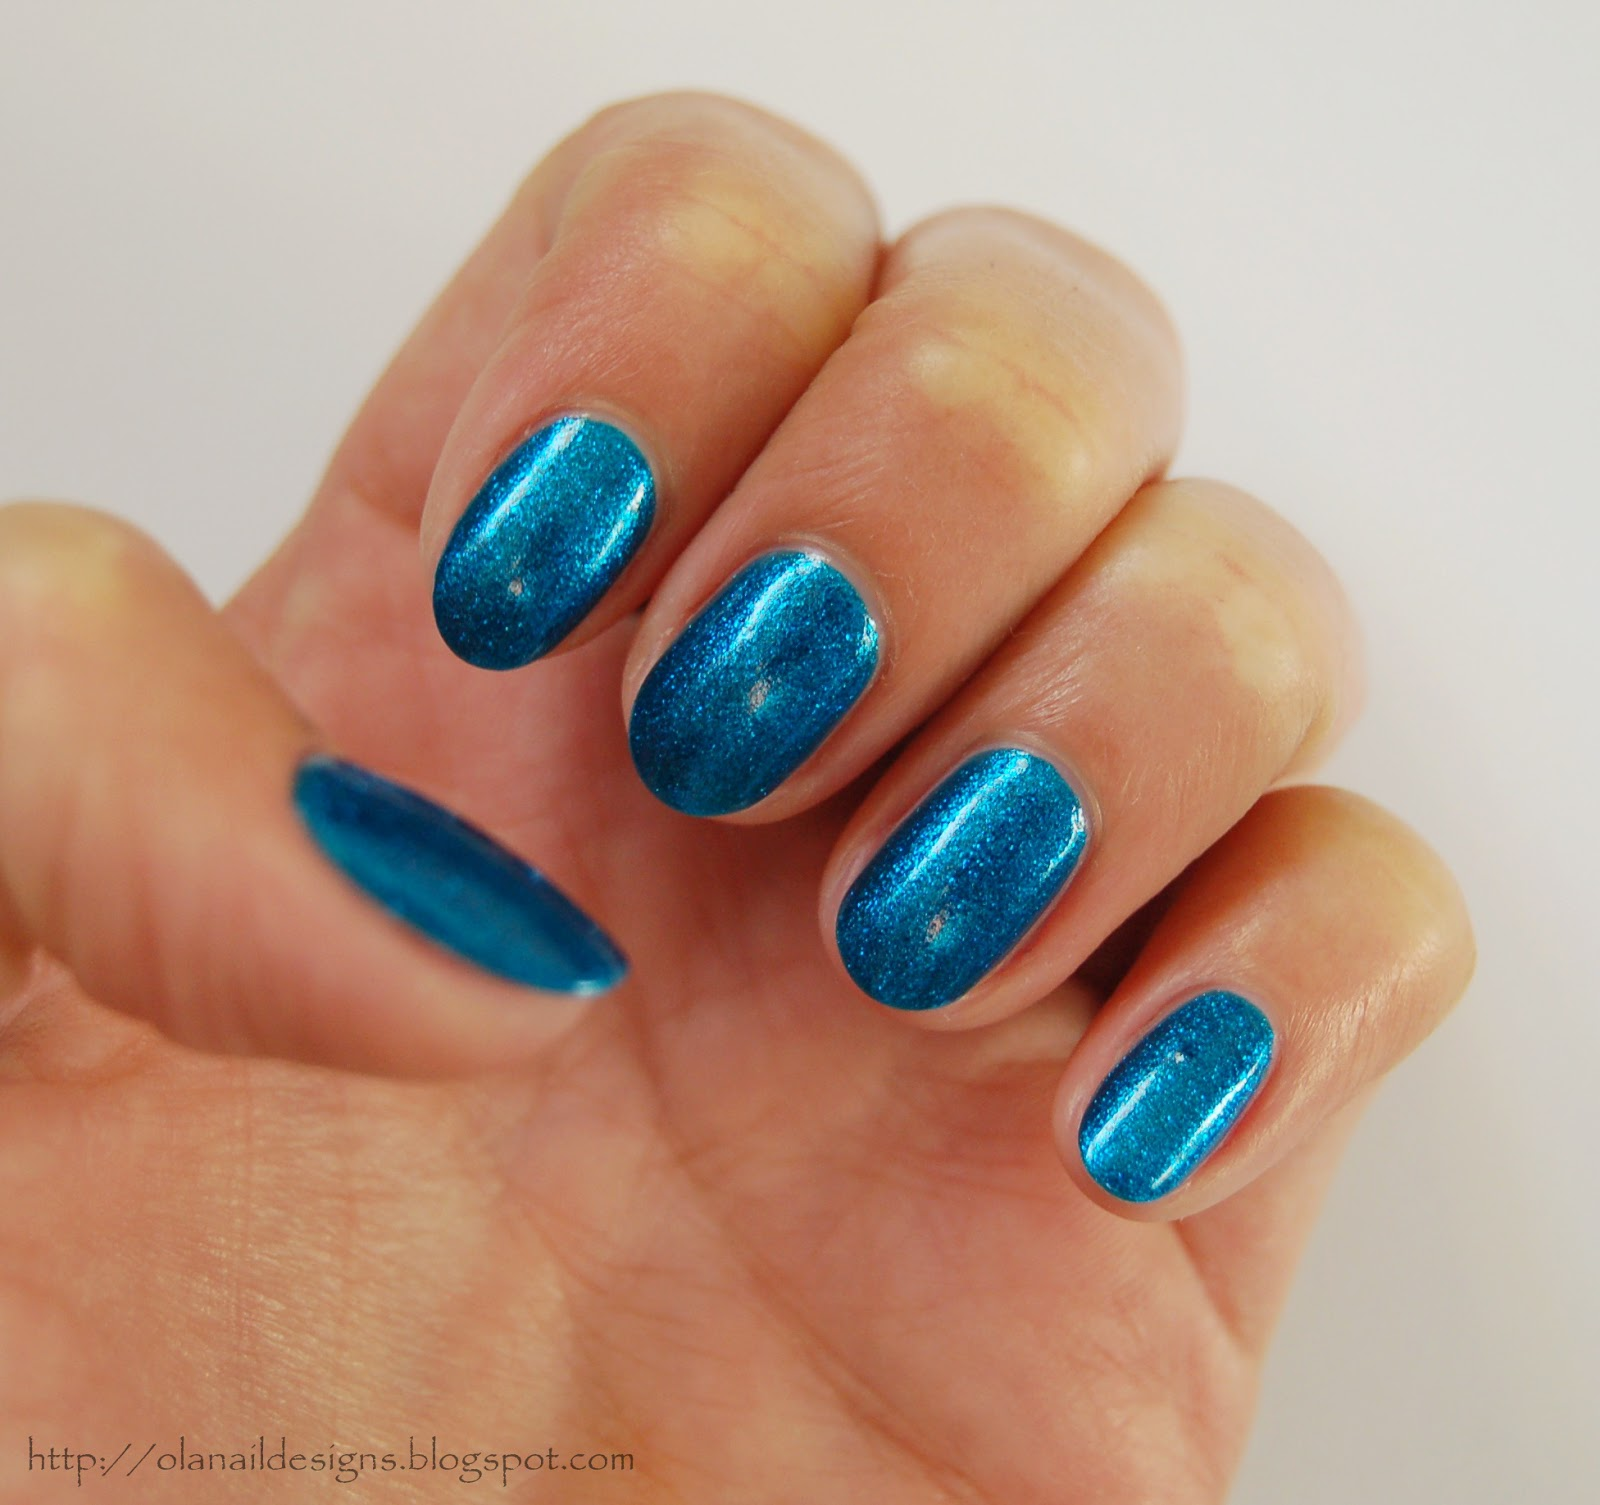 nails in sea colour